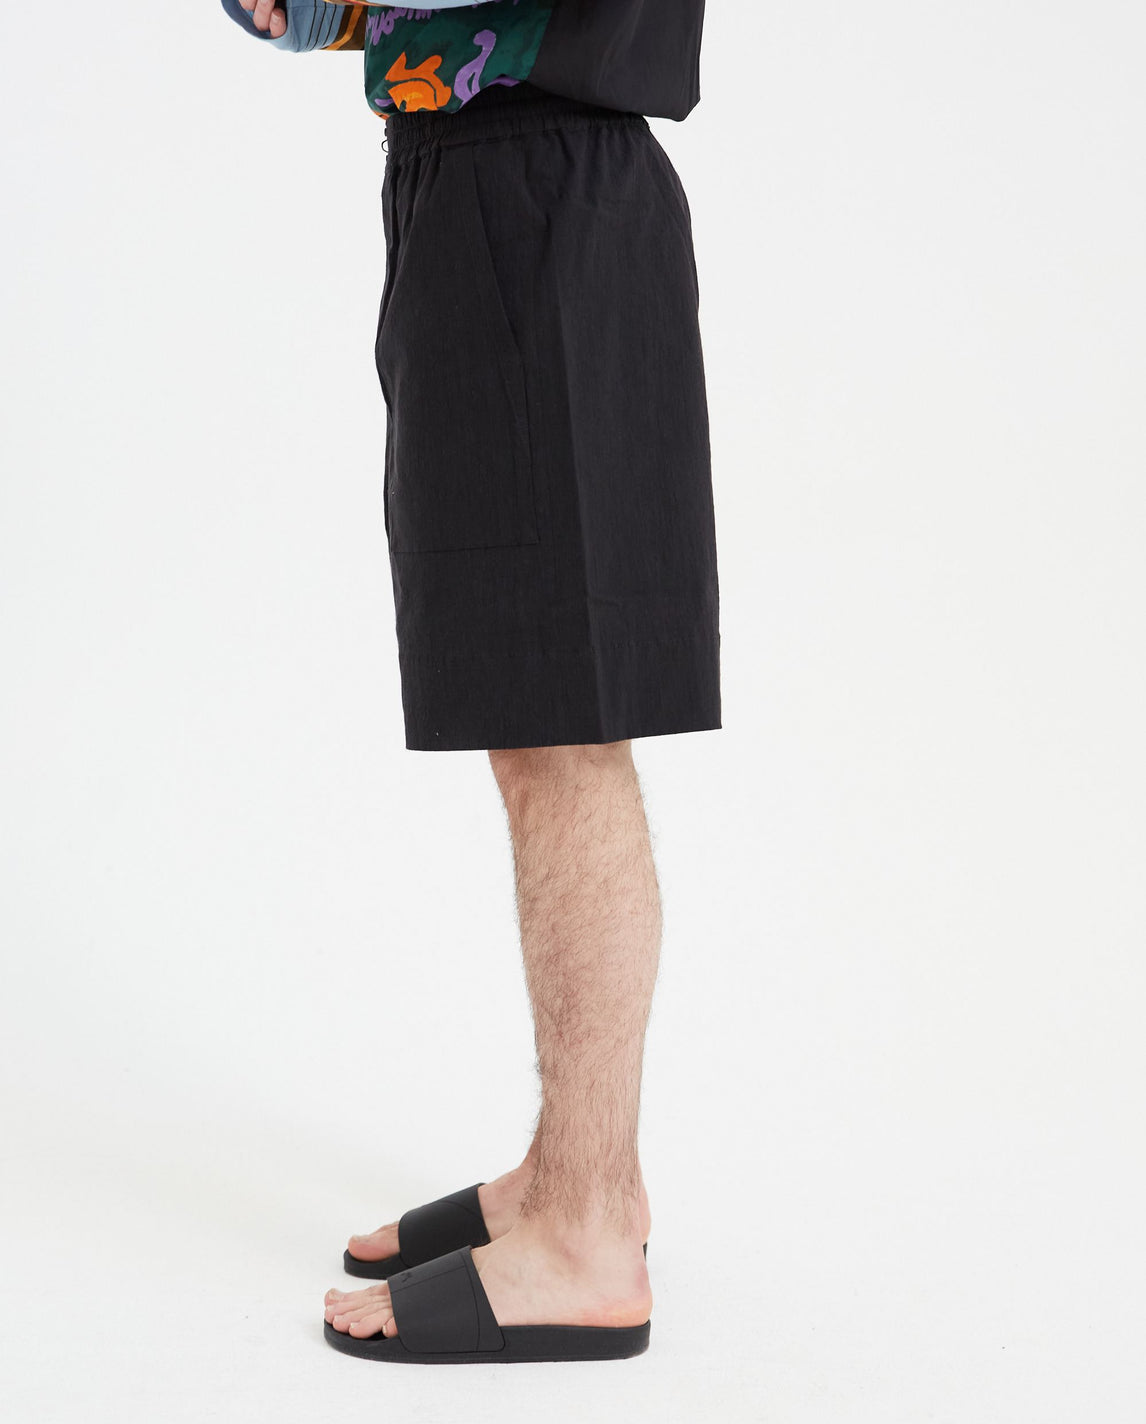 Elastic Crisp Shorts - Black UNISEX Pronounce